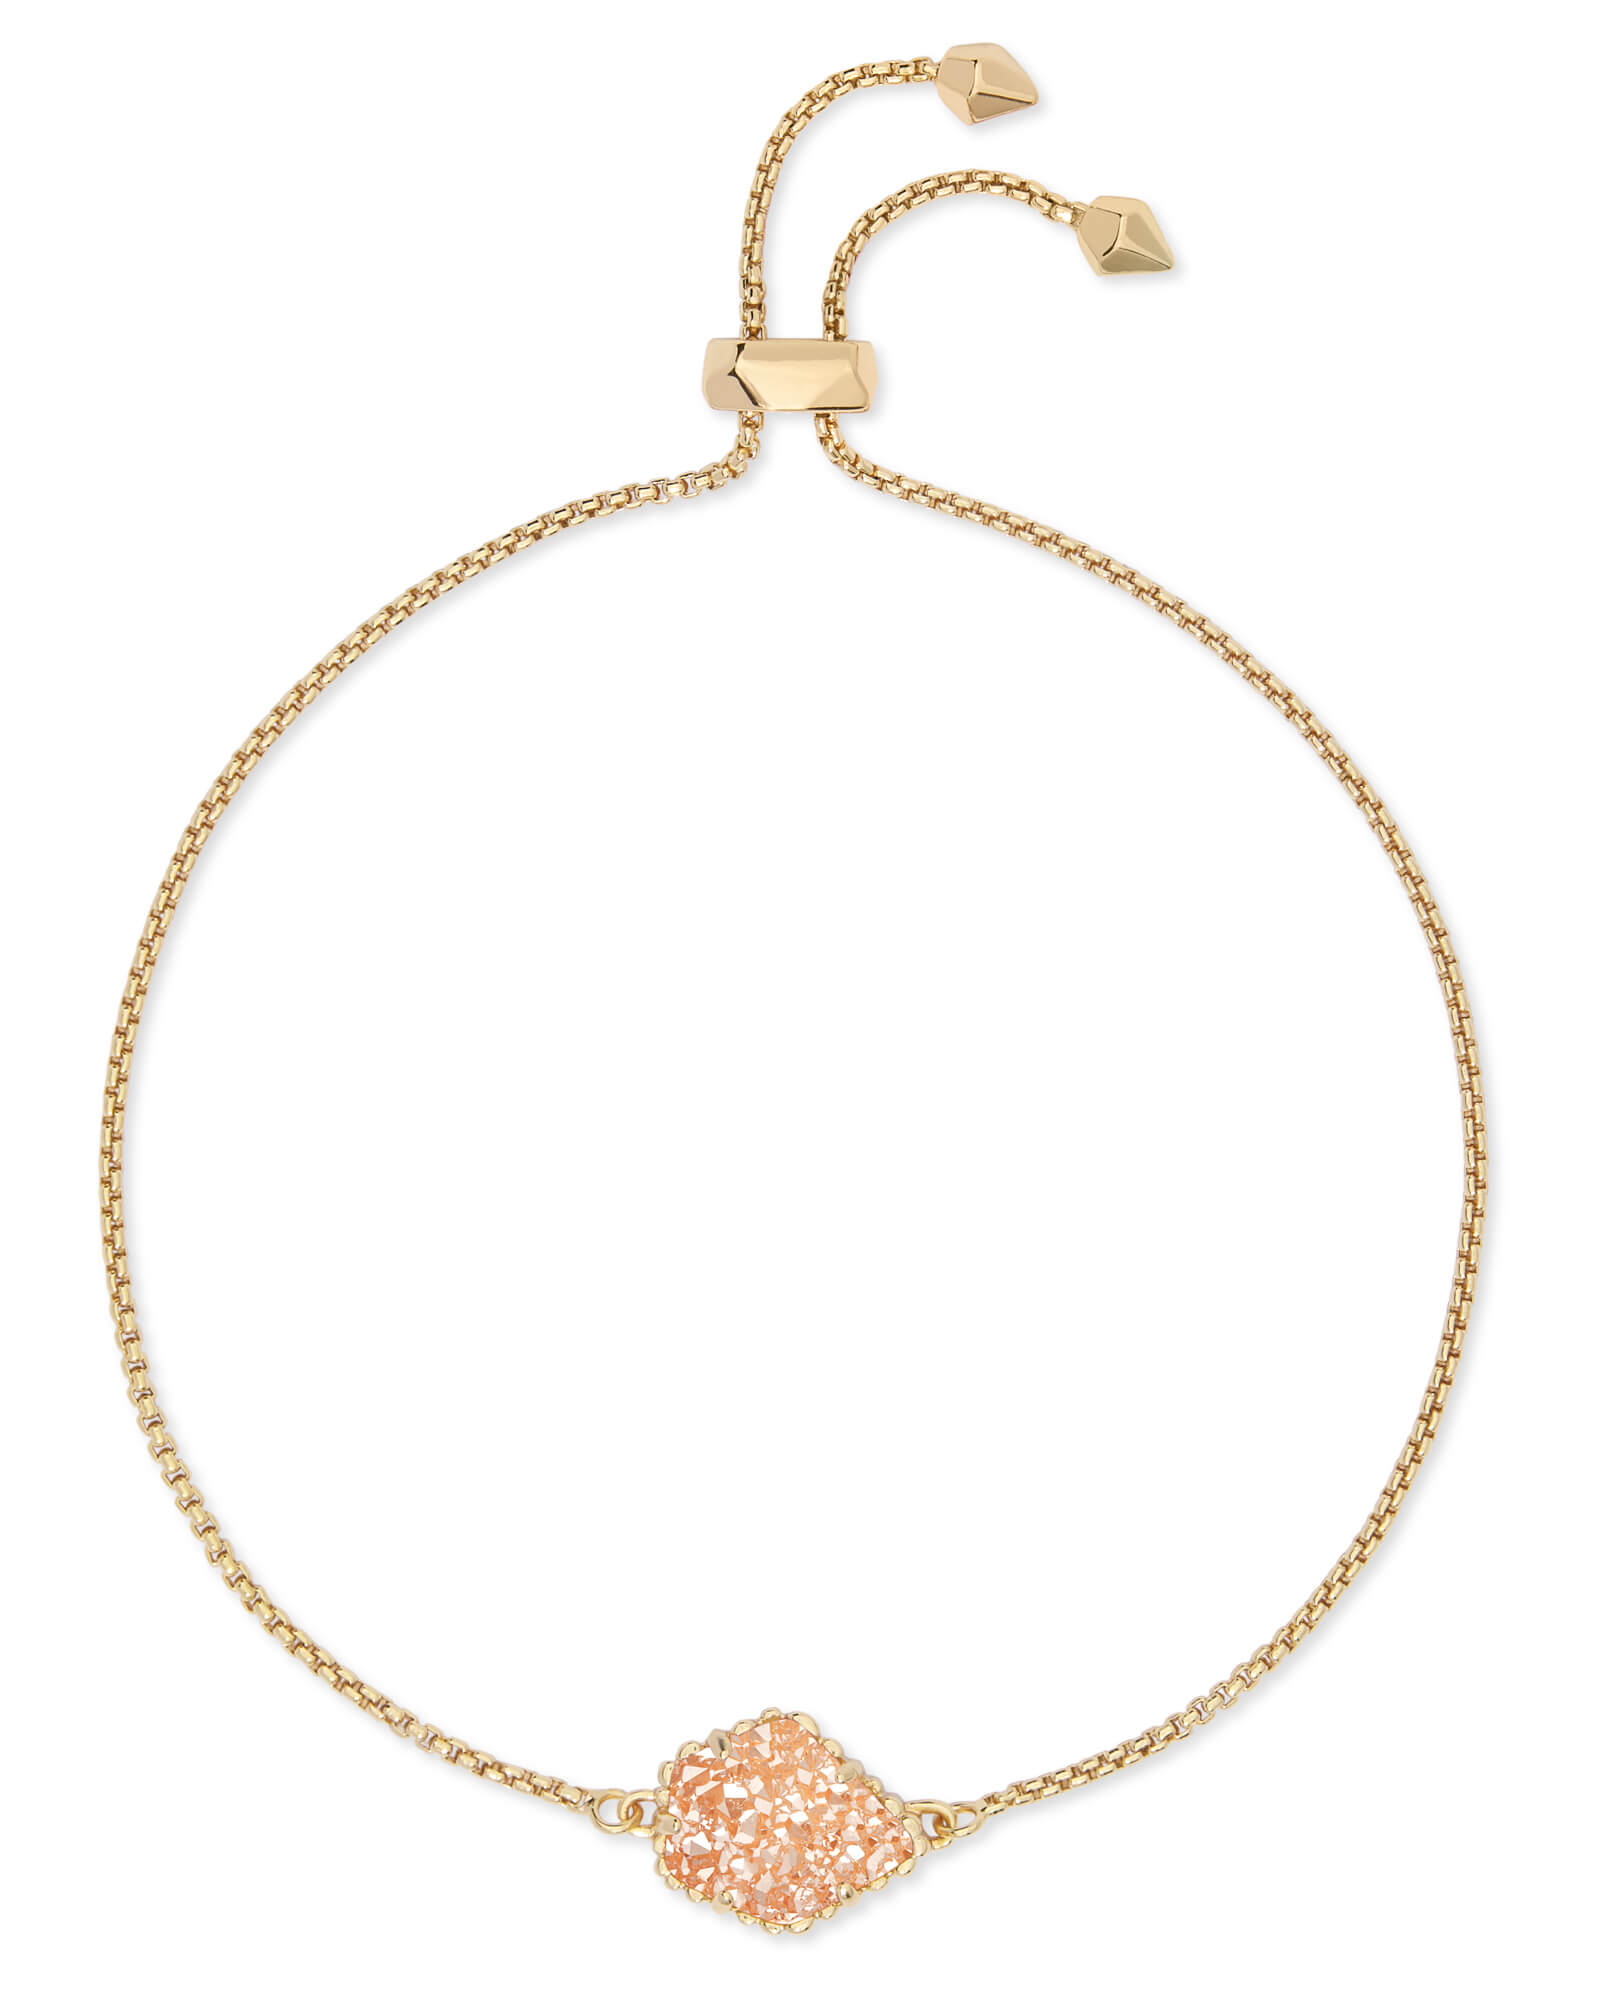 Theo Gold Adjustable Chain Bracelet in Sand Drusy